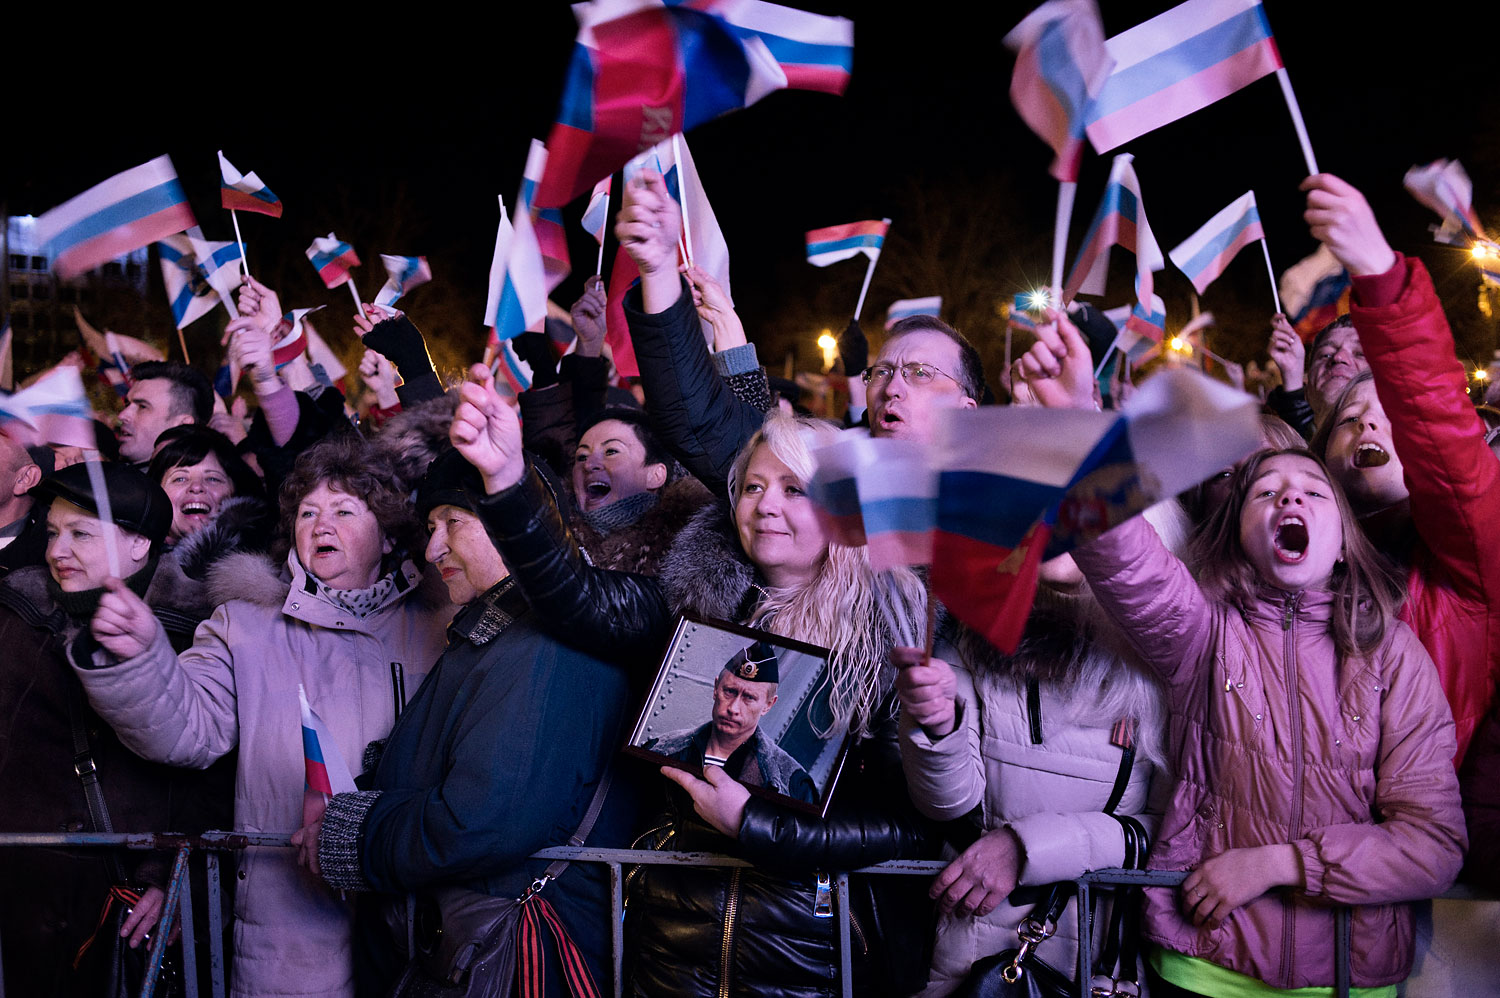 A jubilant crowd in Crimea waits for the results of the referendum in the Crimean city of Sevastopol on March 16, 2014.